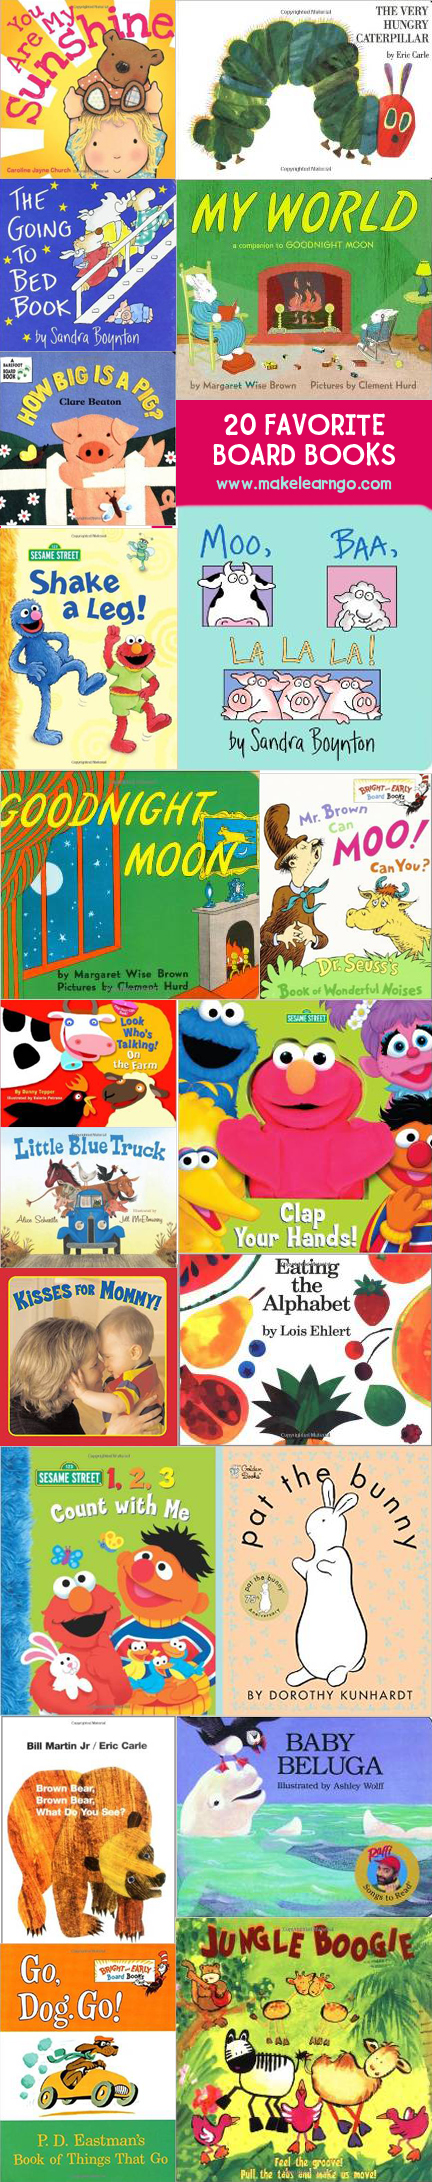 20 Favorite Board Books